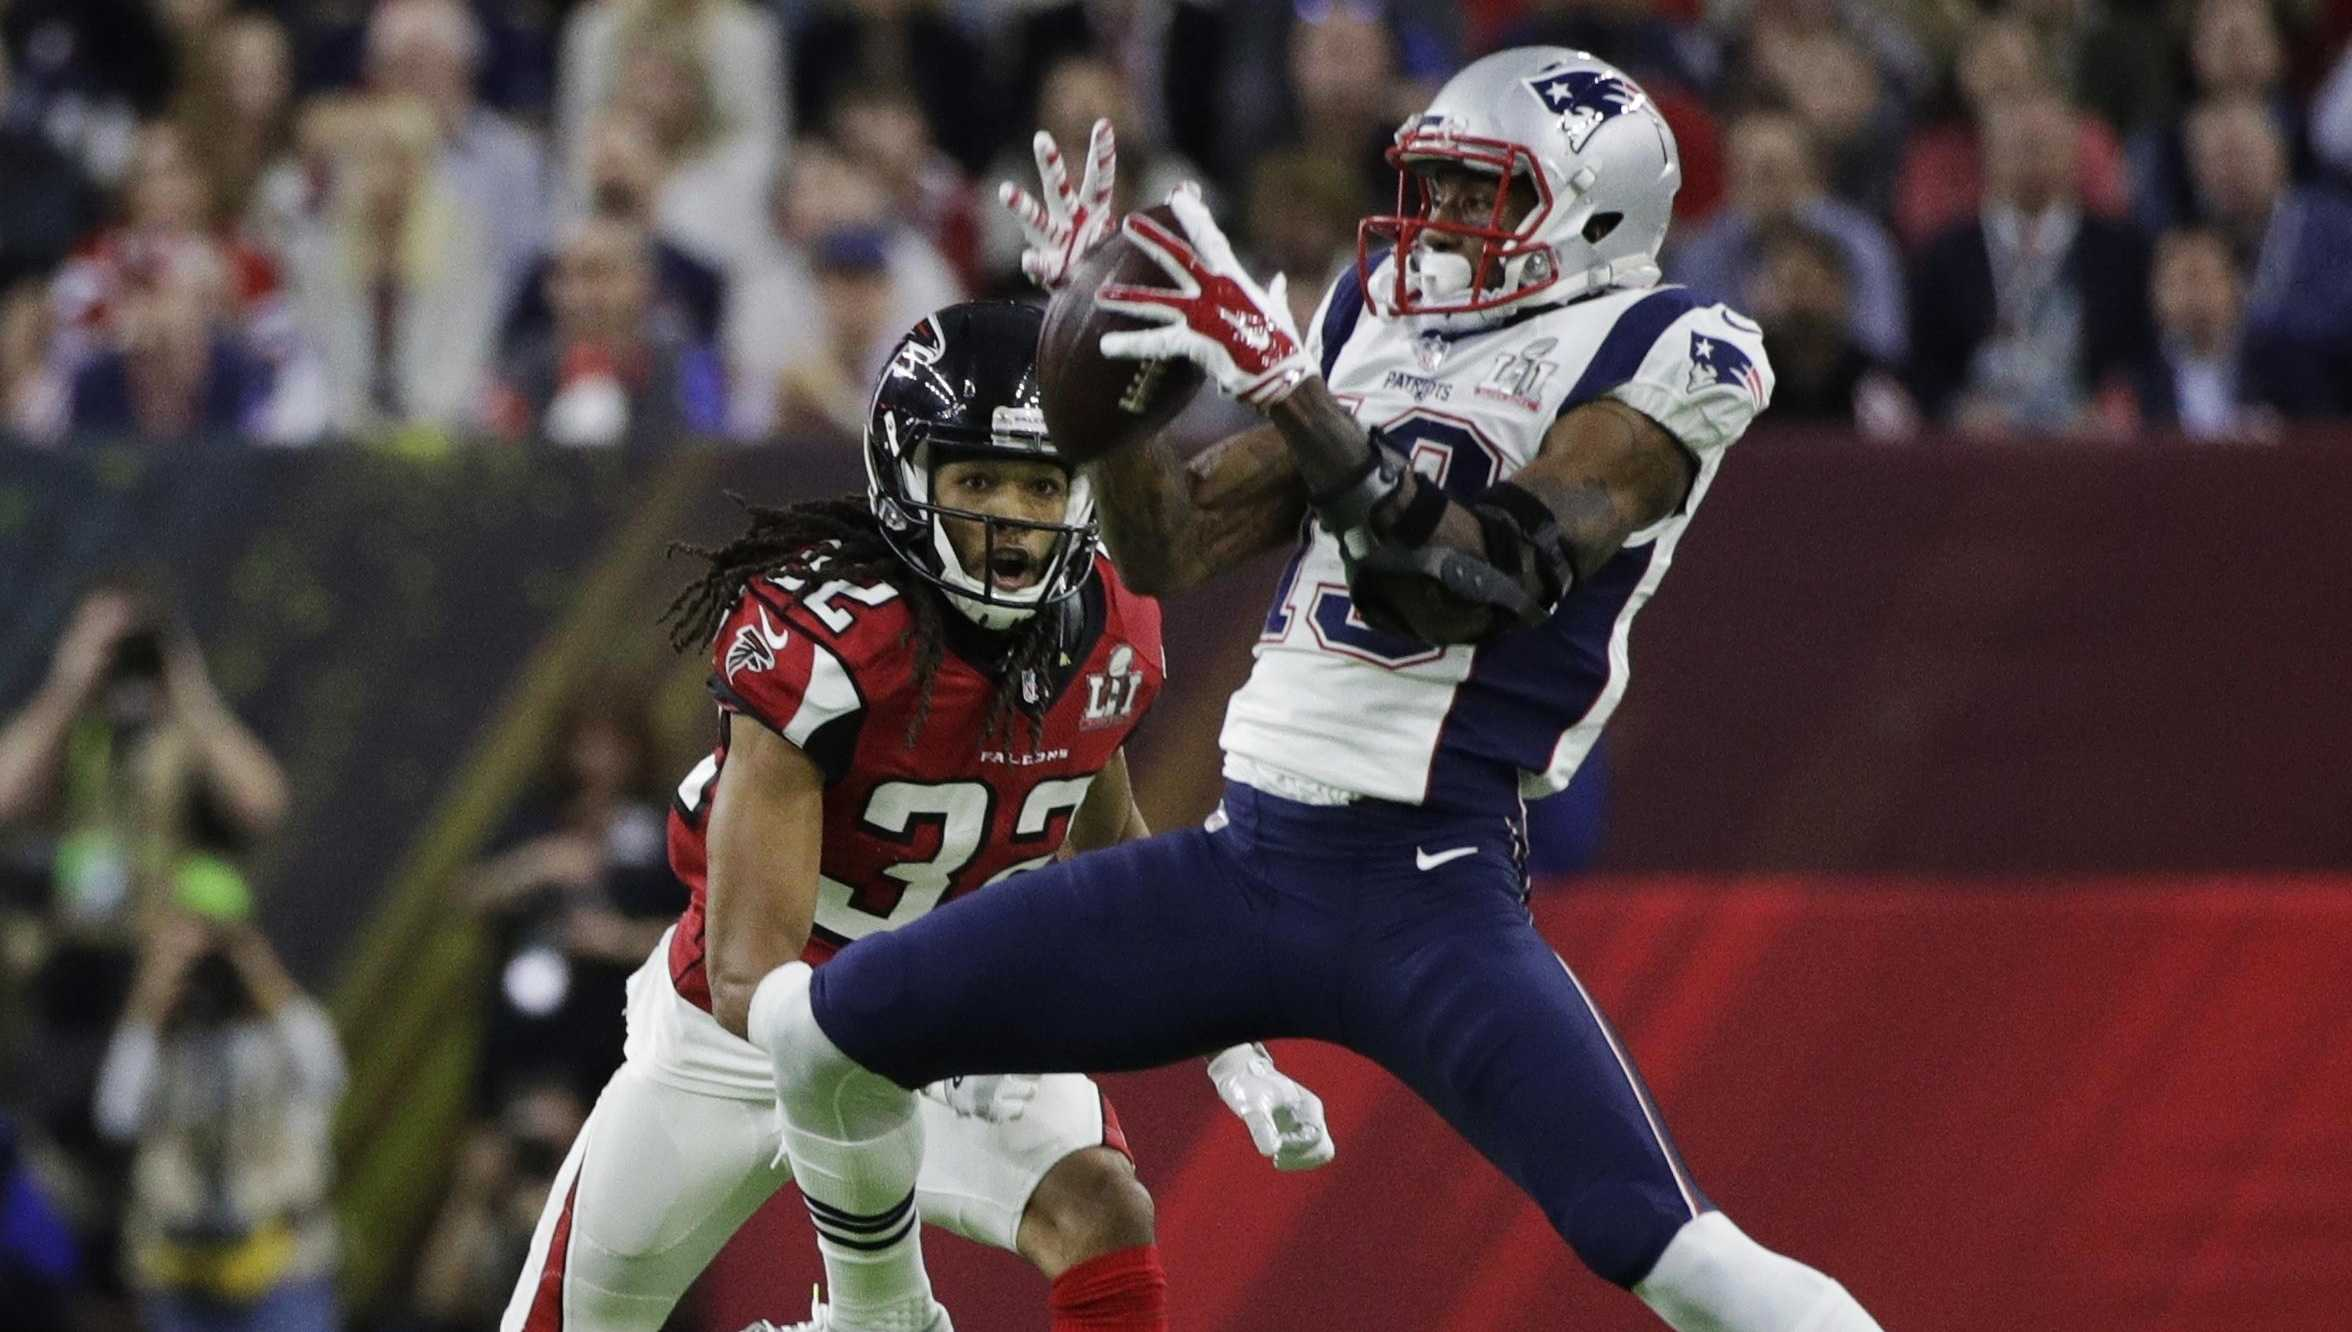 New England Patriots' Malcolm Mitchell, right, catches a pass under pressure from Atlanta Falcons' Jalen Collins during the first half of the NFL Super Bowl 51.